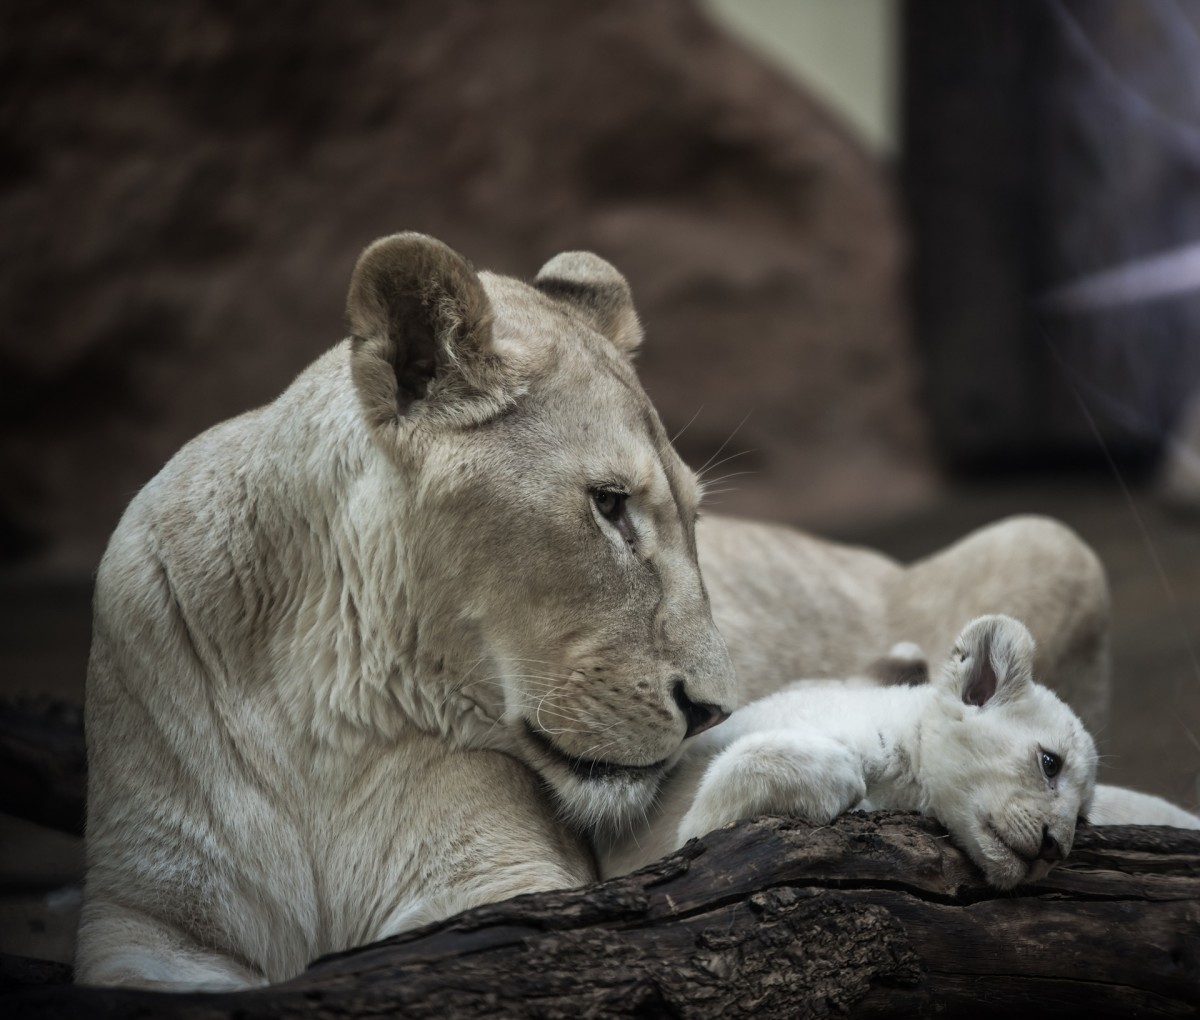 White tigers in the wild